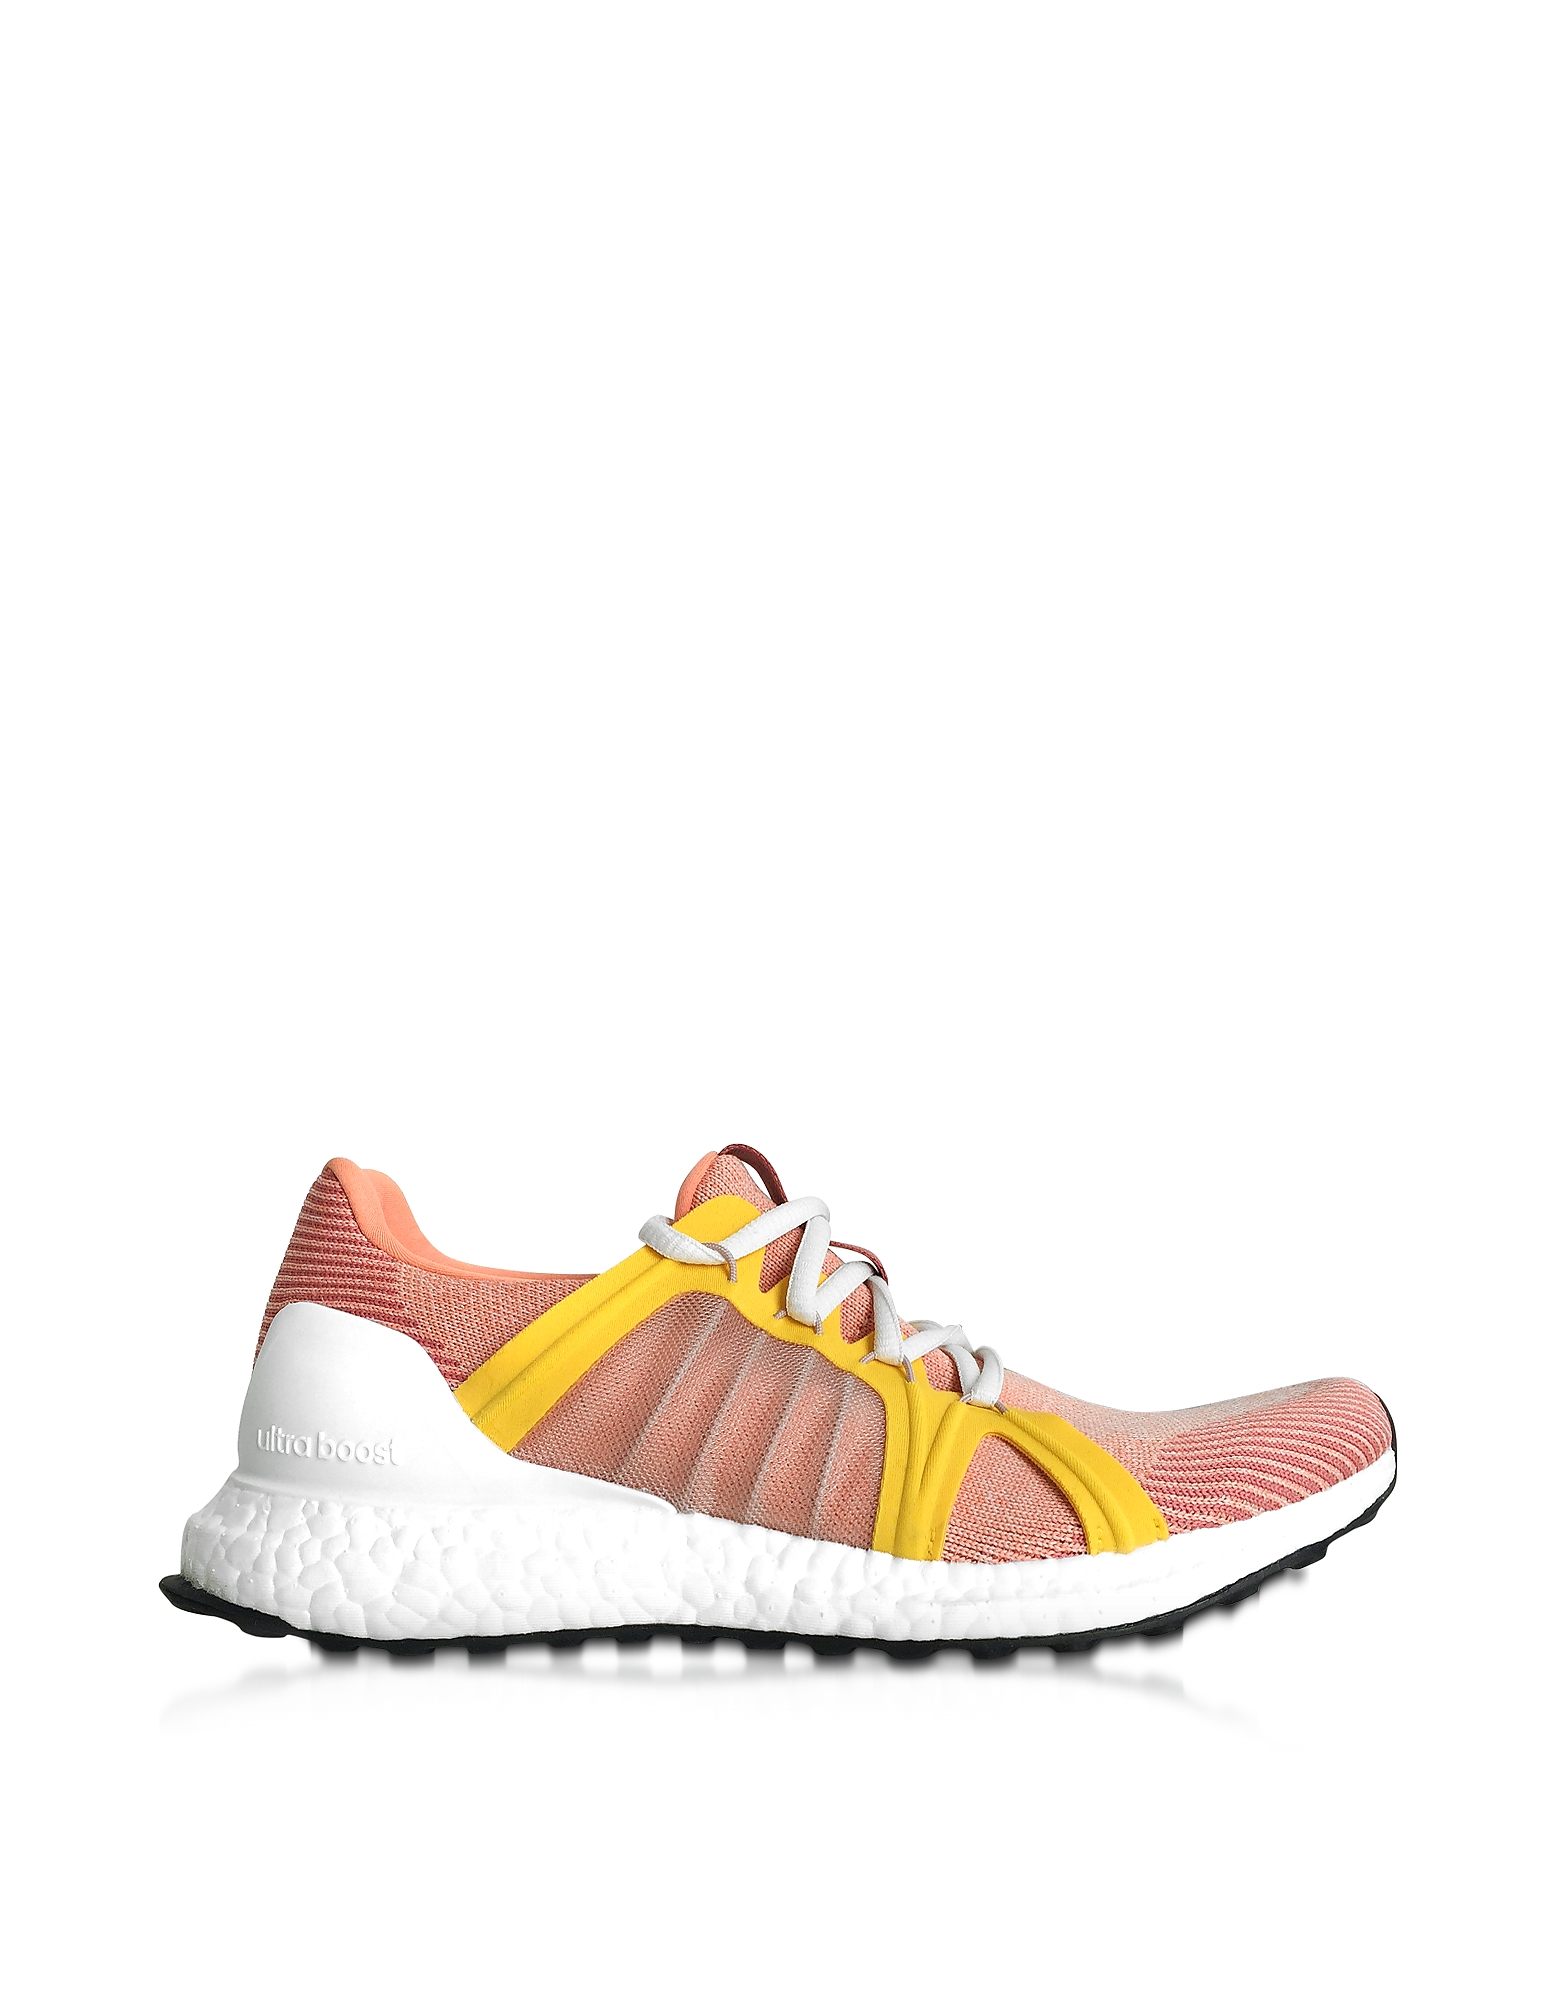 Adidas Stella McCartney Shoes, Apricot Ultraboost Trainers